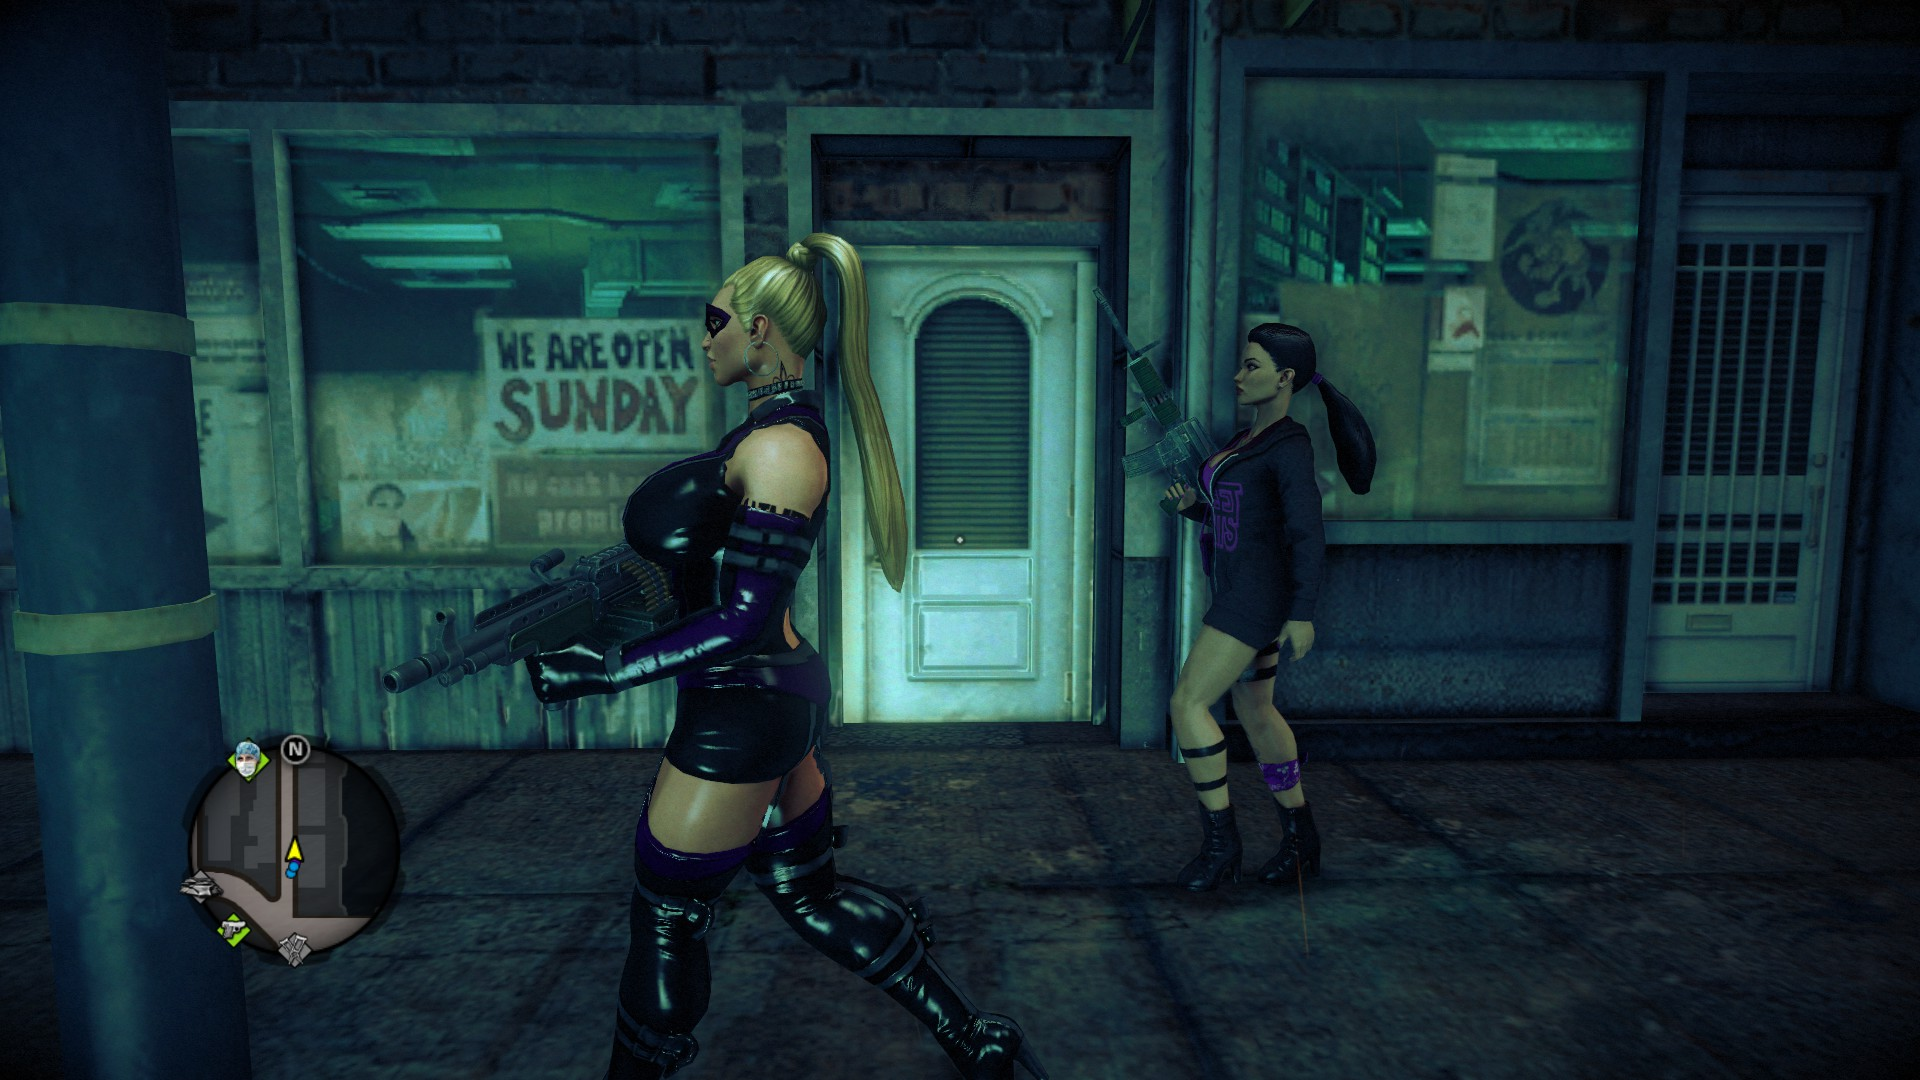 Free download gientess mod for saints row softcore pics